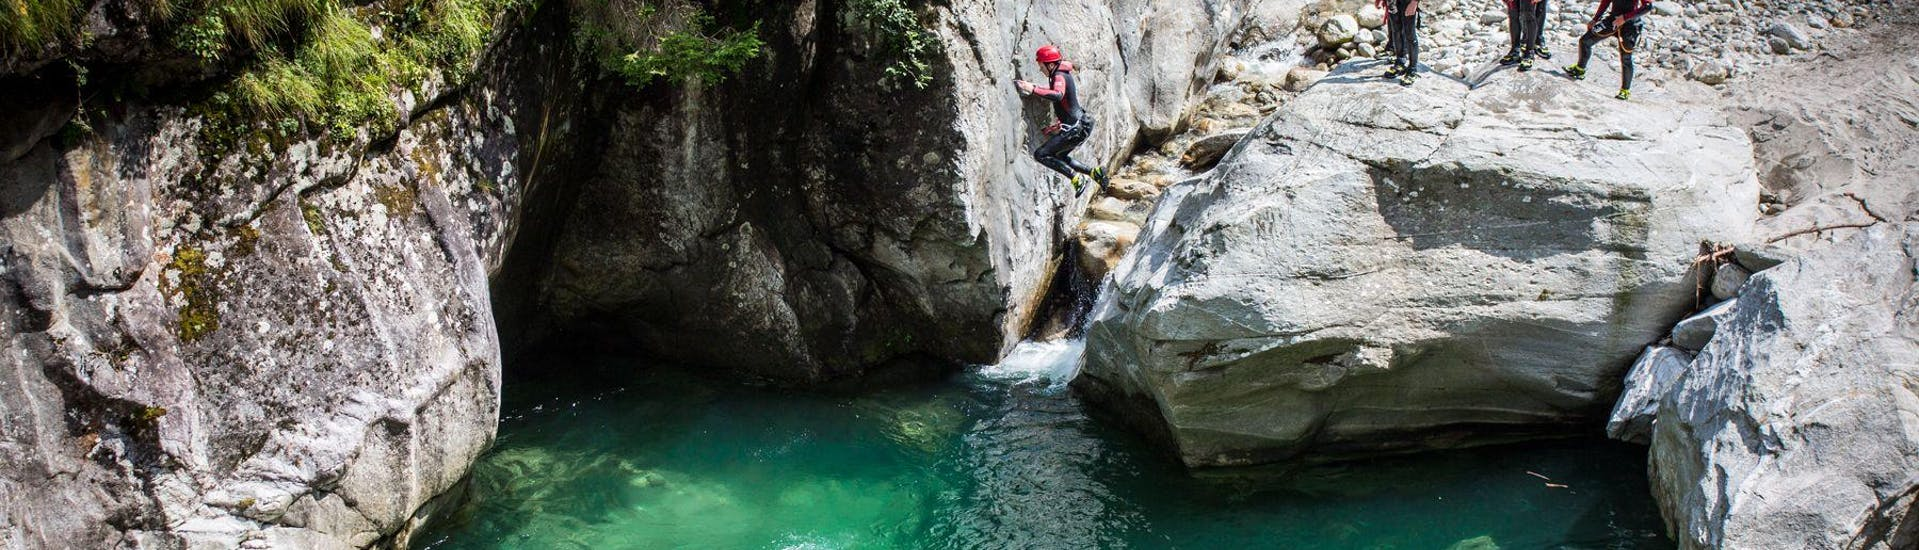 A group of people taking part in the tour Canyoning for Families - Zemmschlucht with Mountain Sports Mayrhofen is jumping into a natural pool of water one by one.